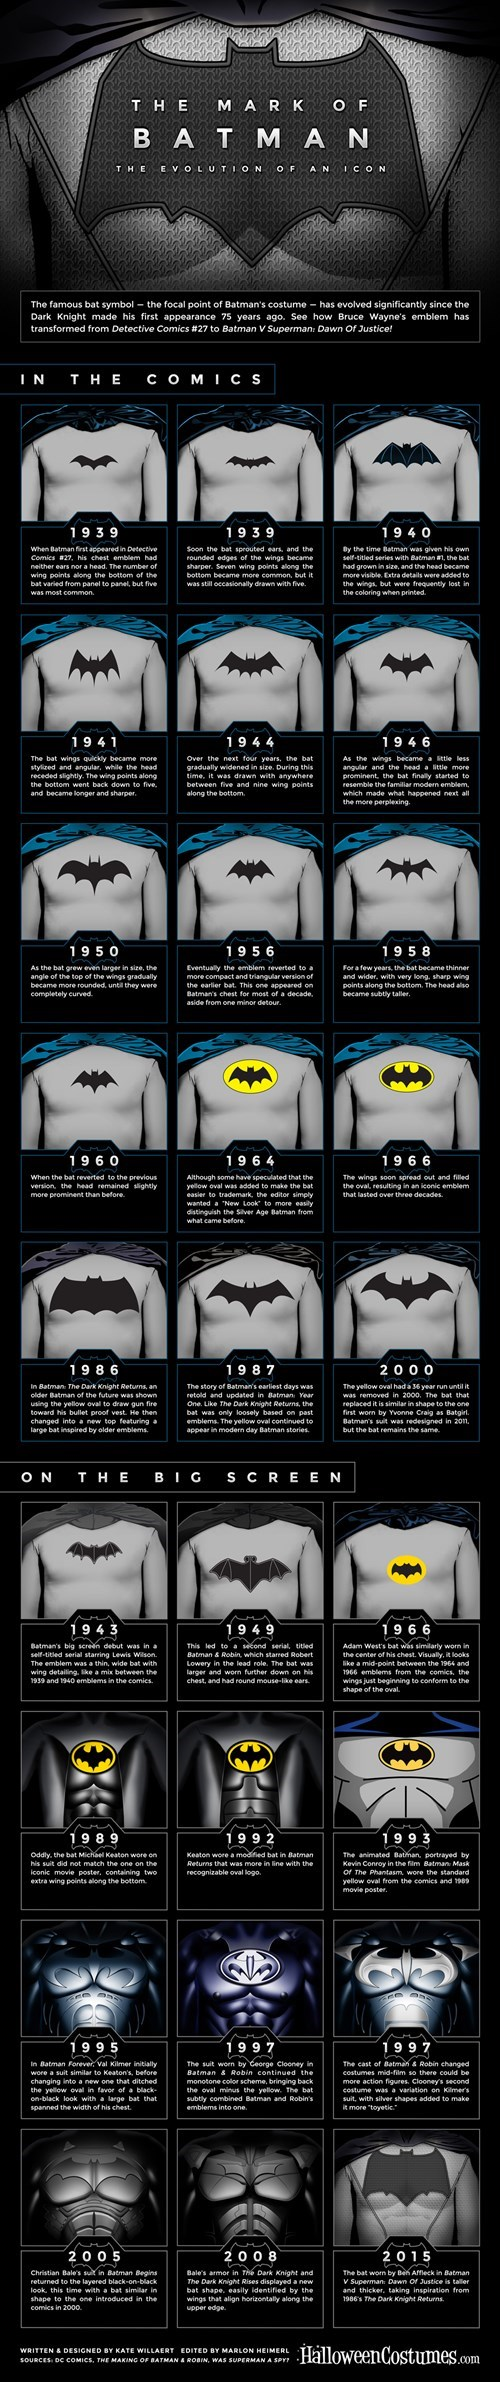 The Mark of Batman